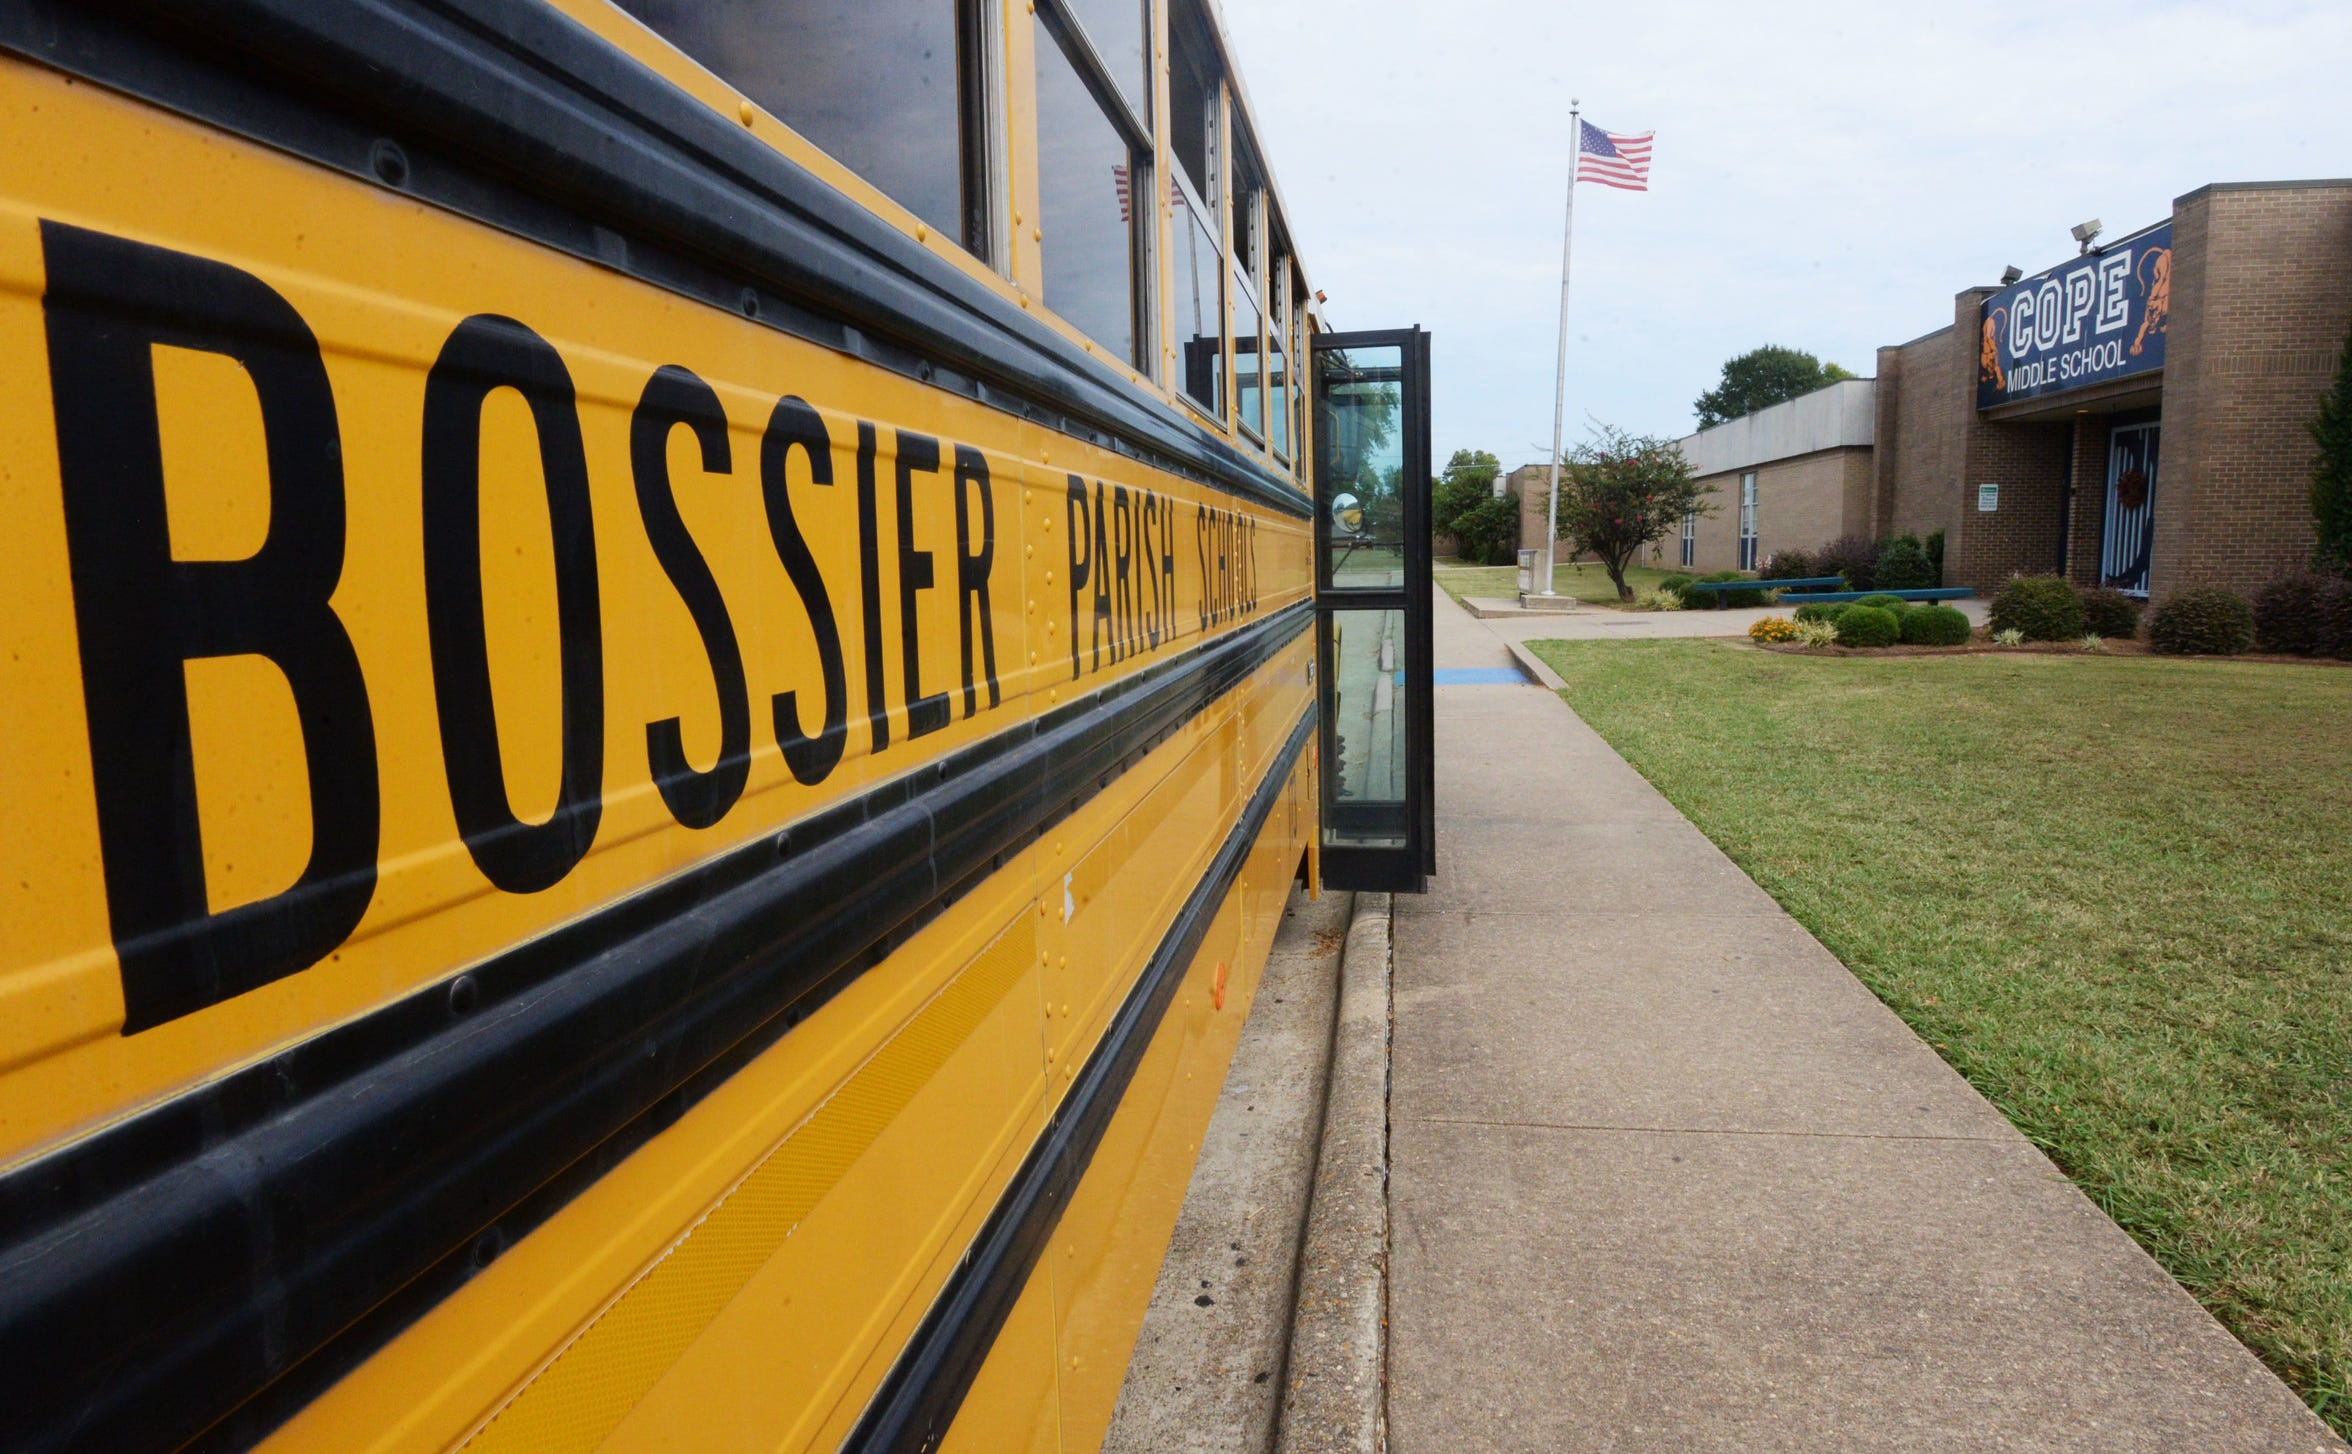 Bossier Schools will suspend its food service program and close all sites, as well as administrative offices, until further notice from the state.